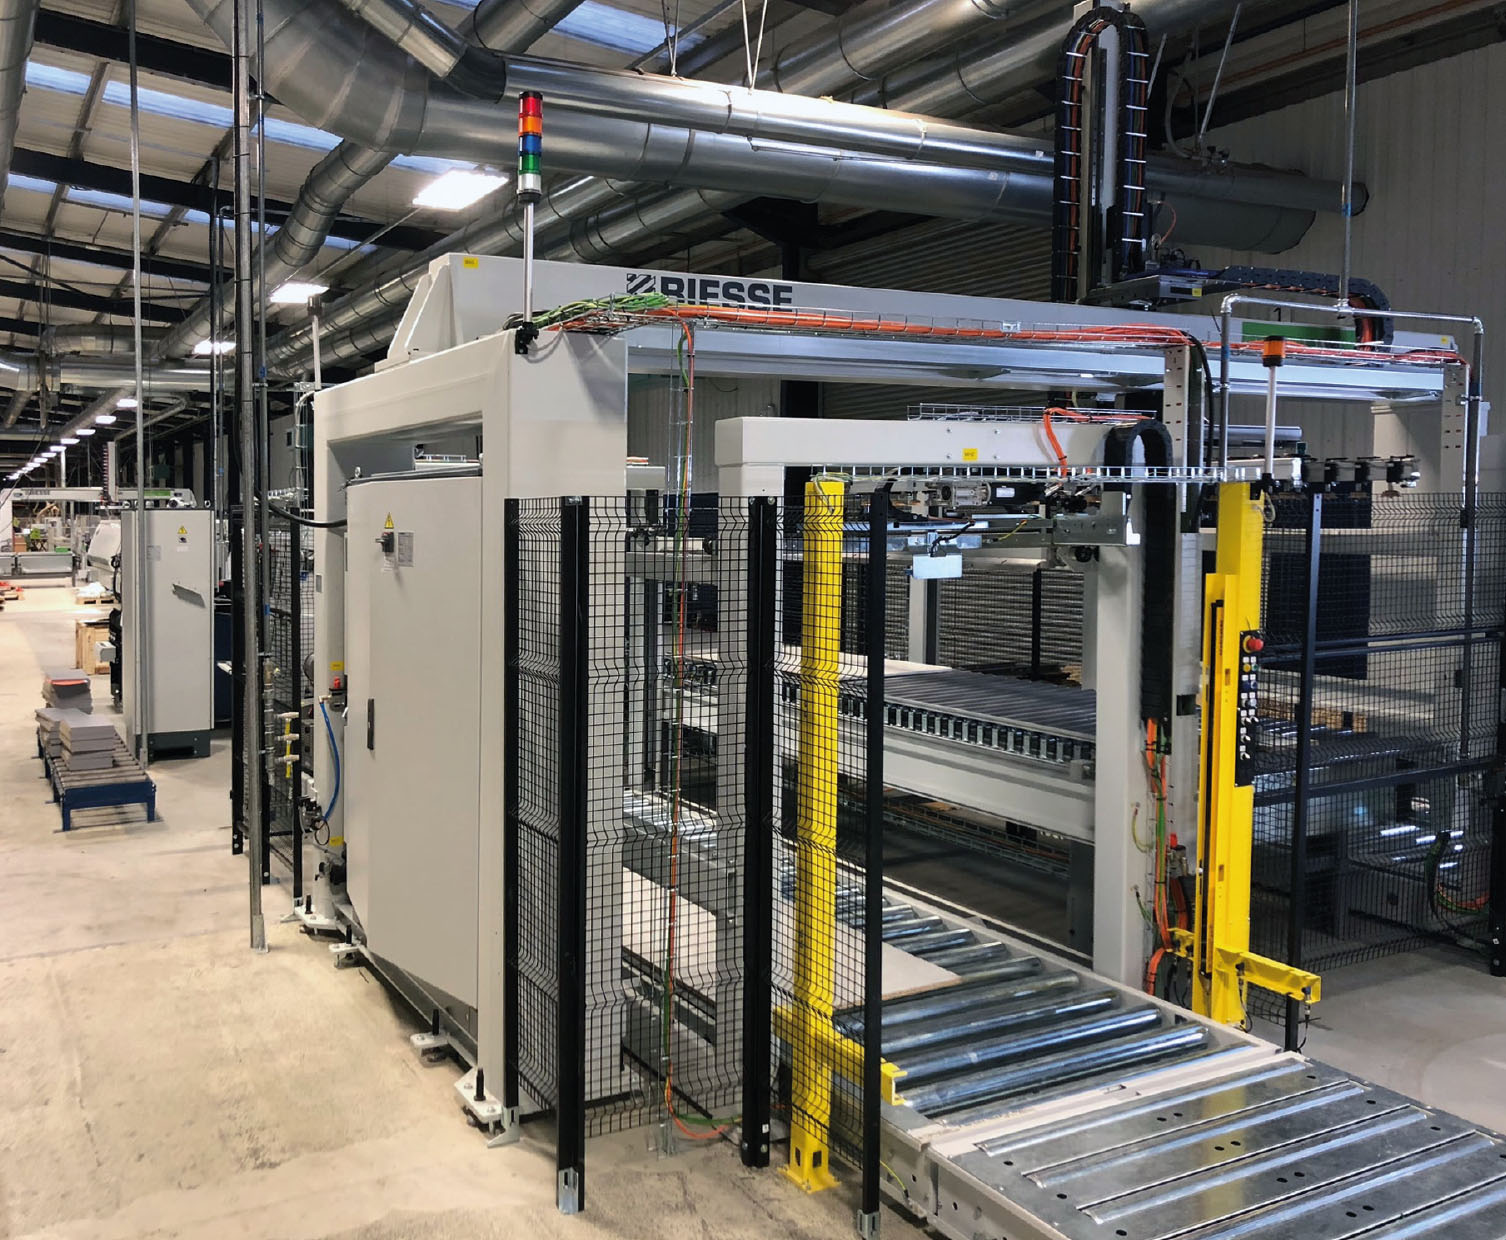 dp-components invest in more edgebanding capacity